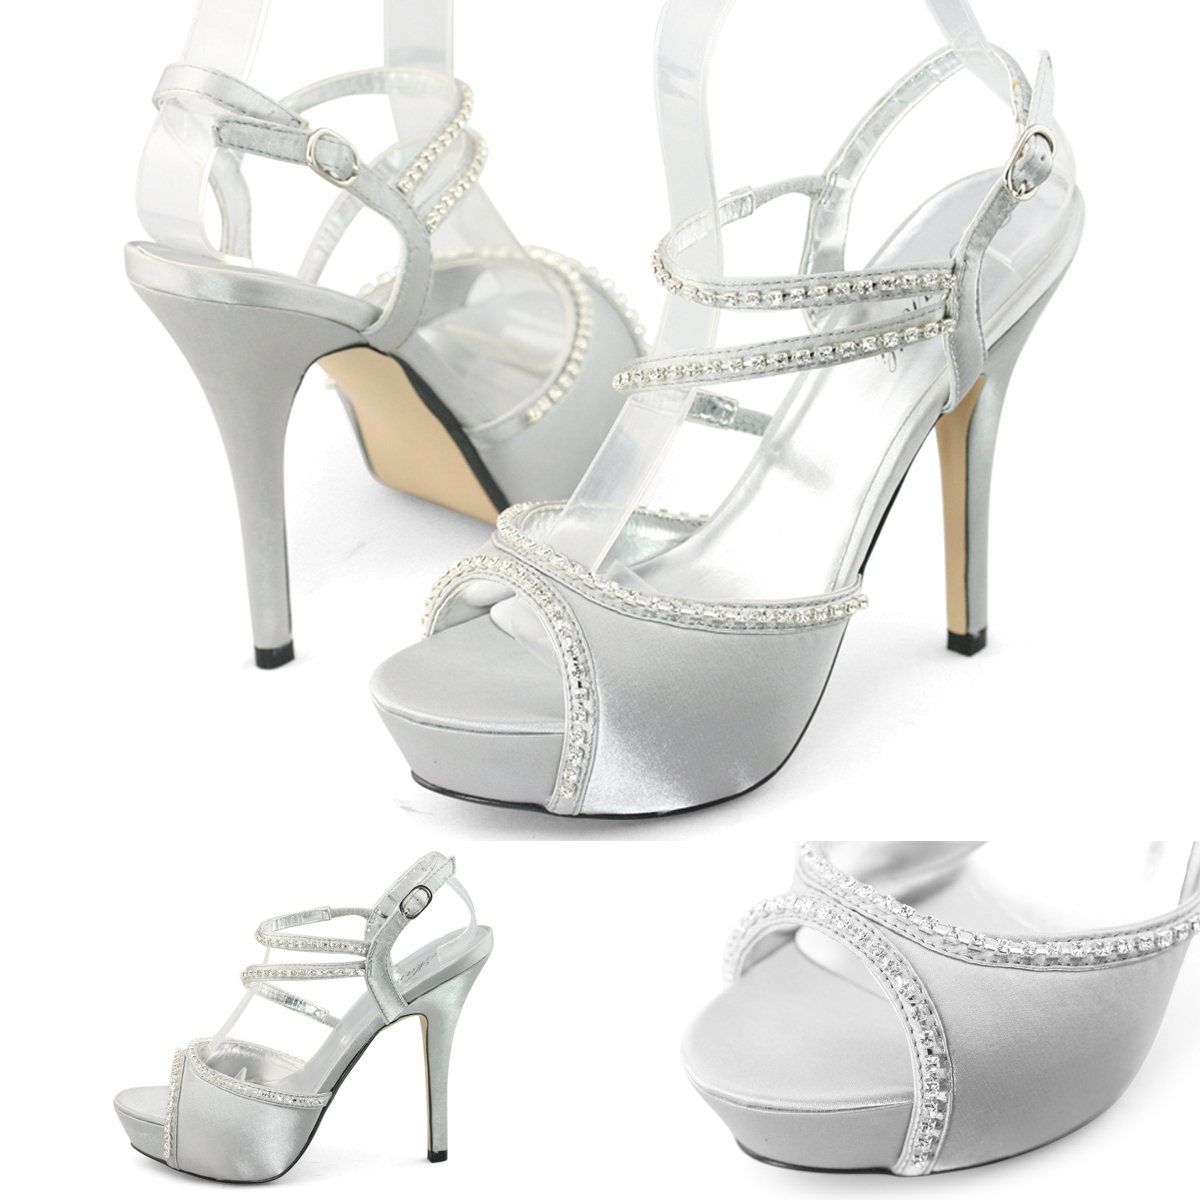 Shoes online for women Womens silver dress shoes